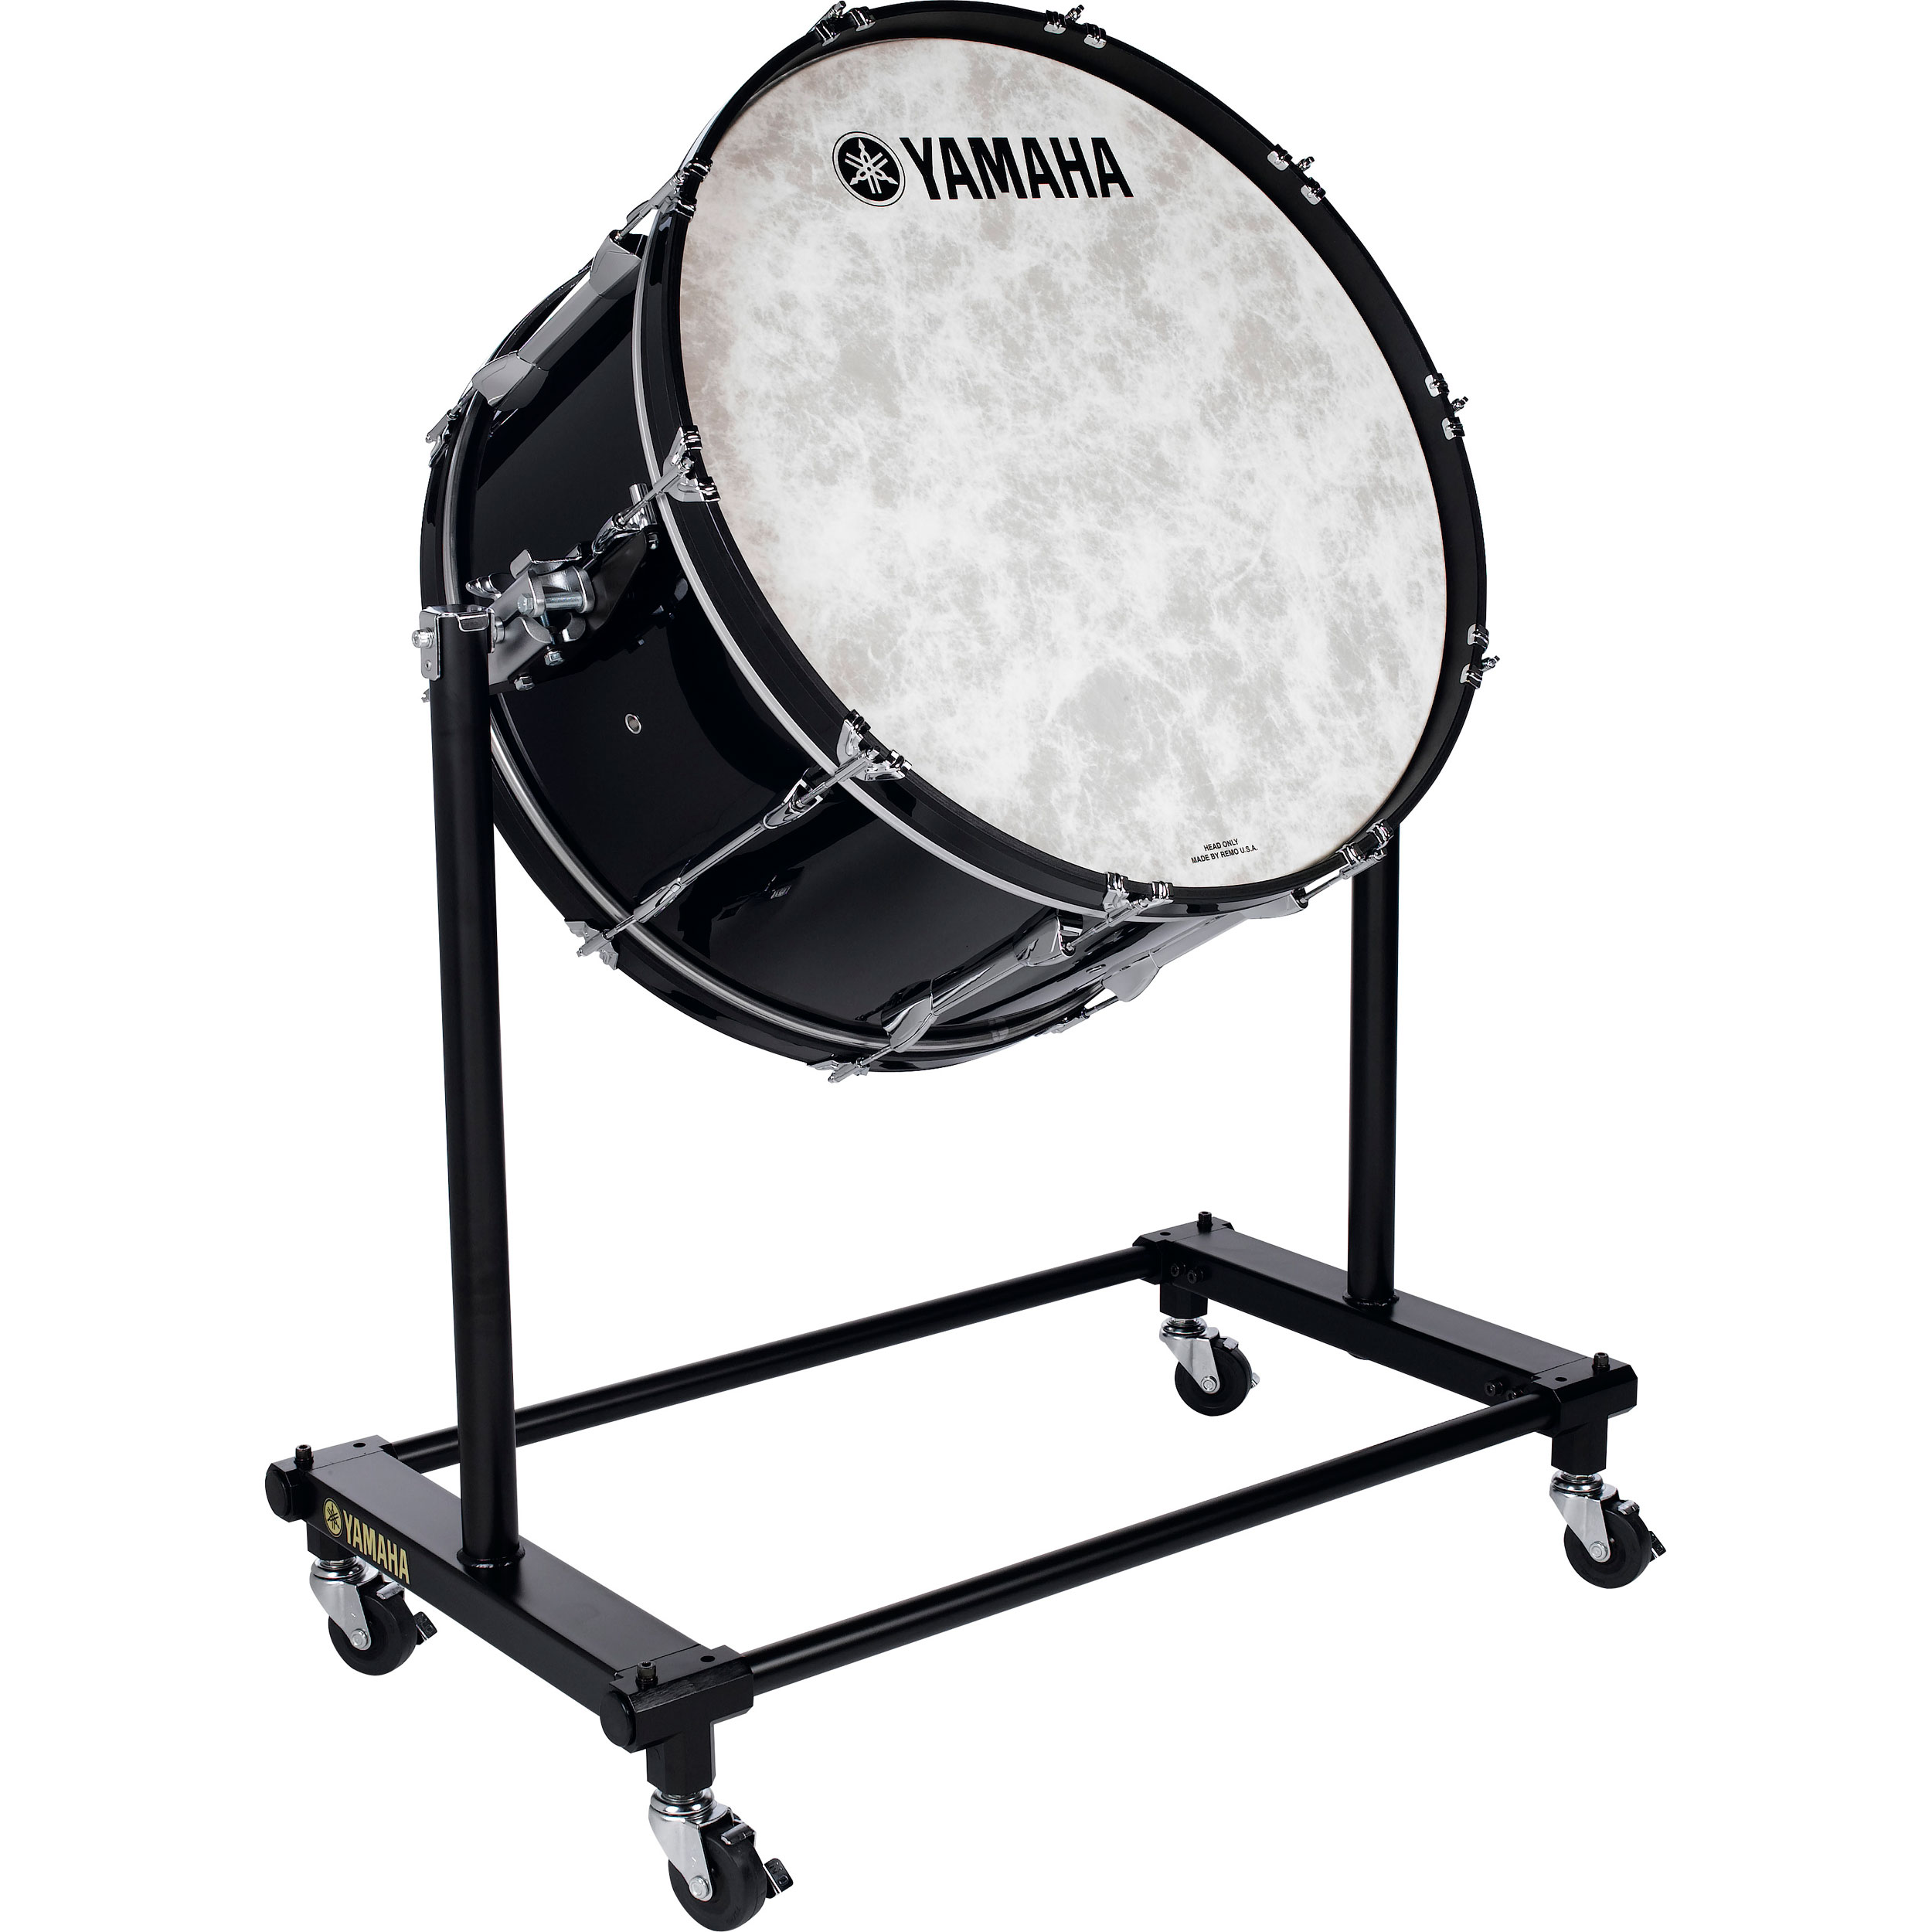 "Yamaha 36"" (Diameter) x 22"" (Deep) 9000 Professional Series Maple Concert Bass Drum in Dark Wood Stain with Stand"